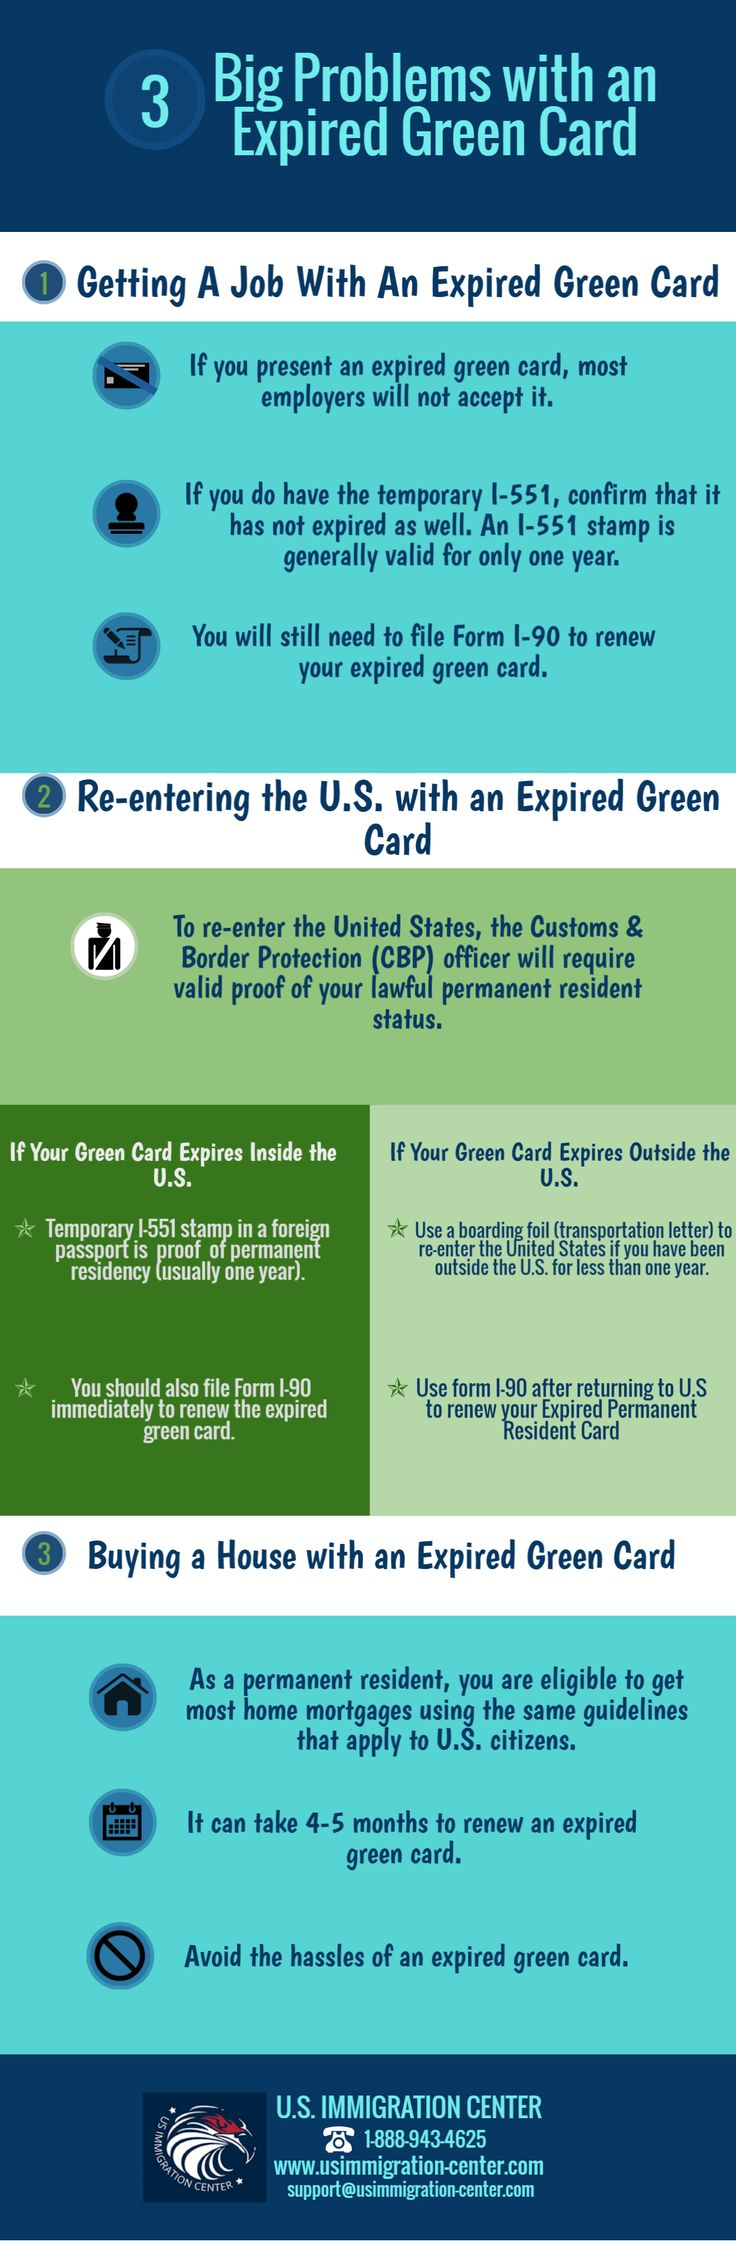 3 Most Common Big Problems with an Expired Green Card.  Learn how to renewal your expired Green card.